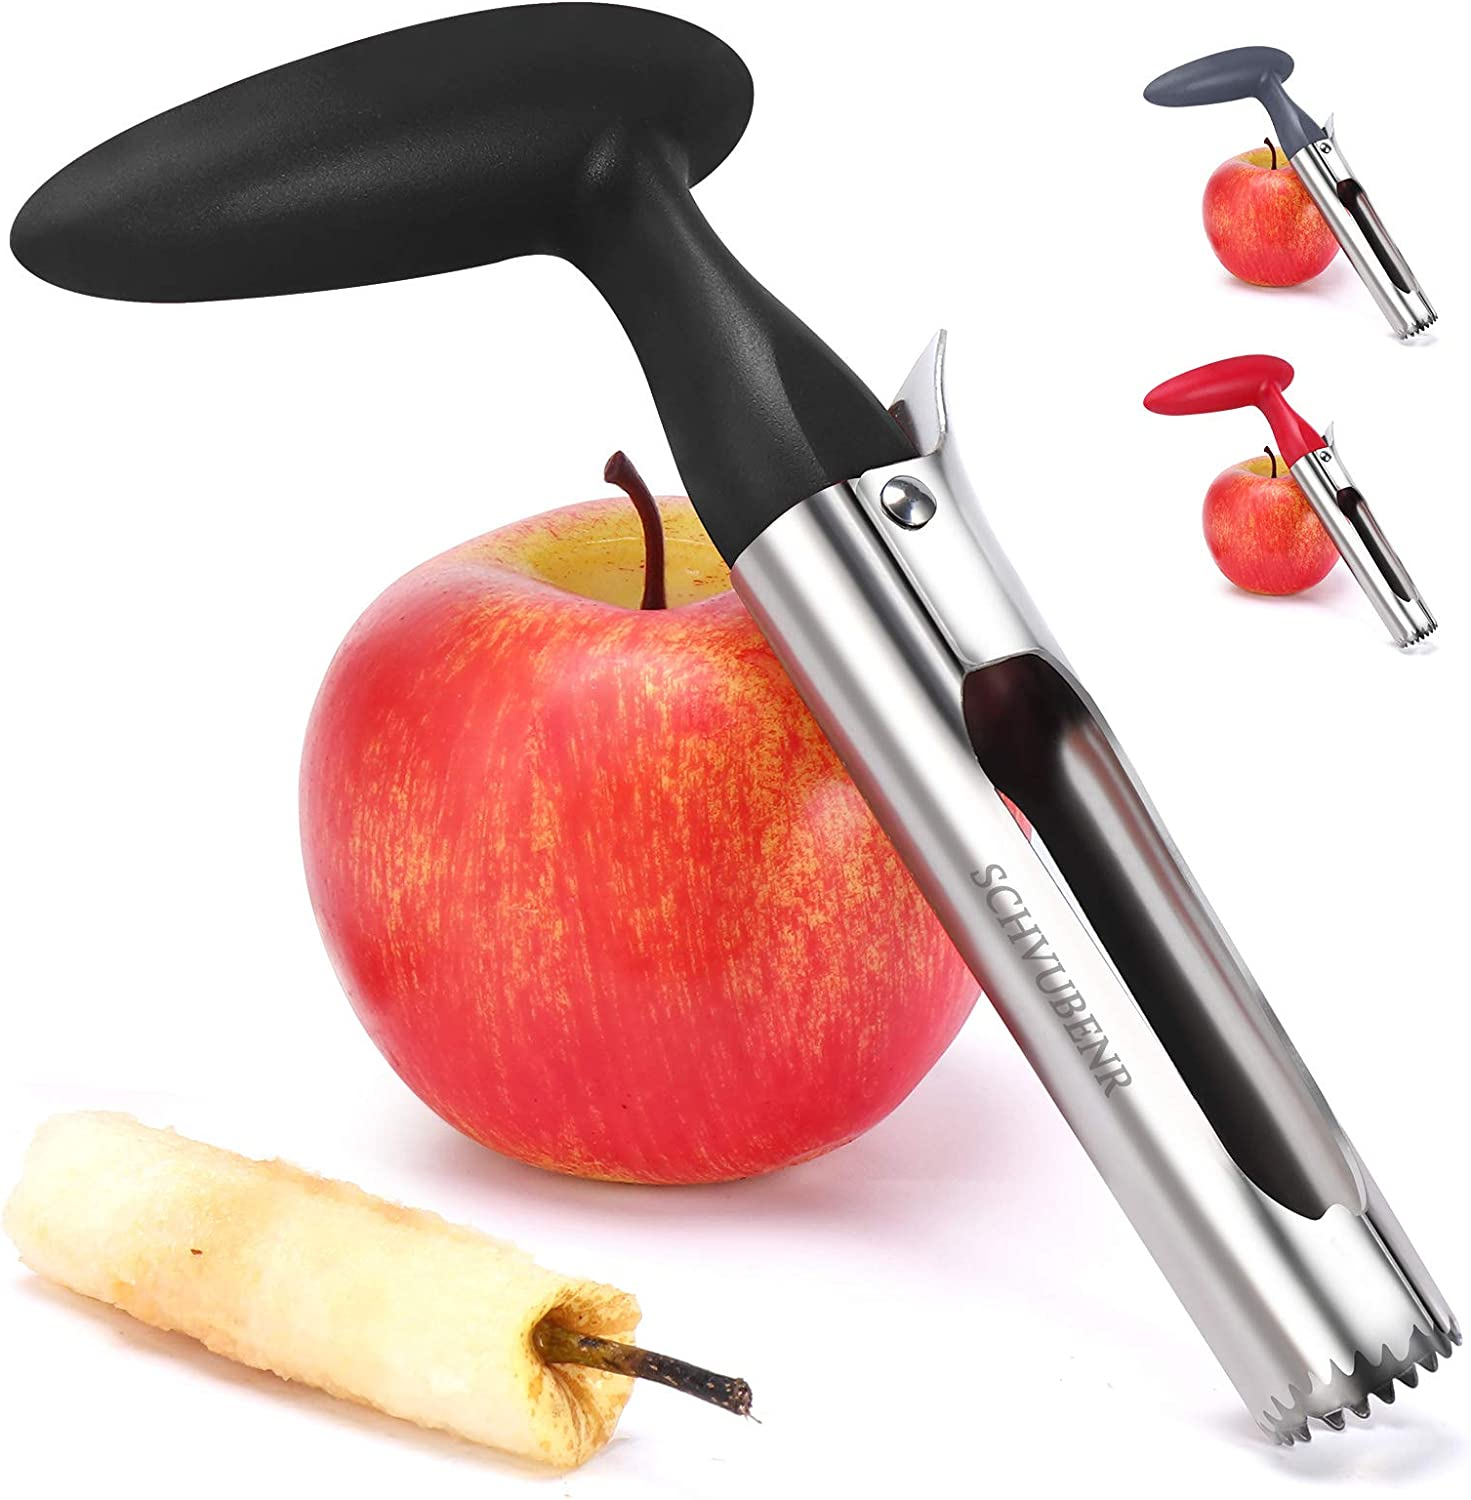 SCHVUBENR Premium Apple Corer Tool - Easy to Use and Clean - Sturdy Apple Core Remover with Sharp Serrature - Stainless Steel Corers for Apple and Pear - Core Fruits with Ease(Black)